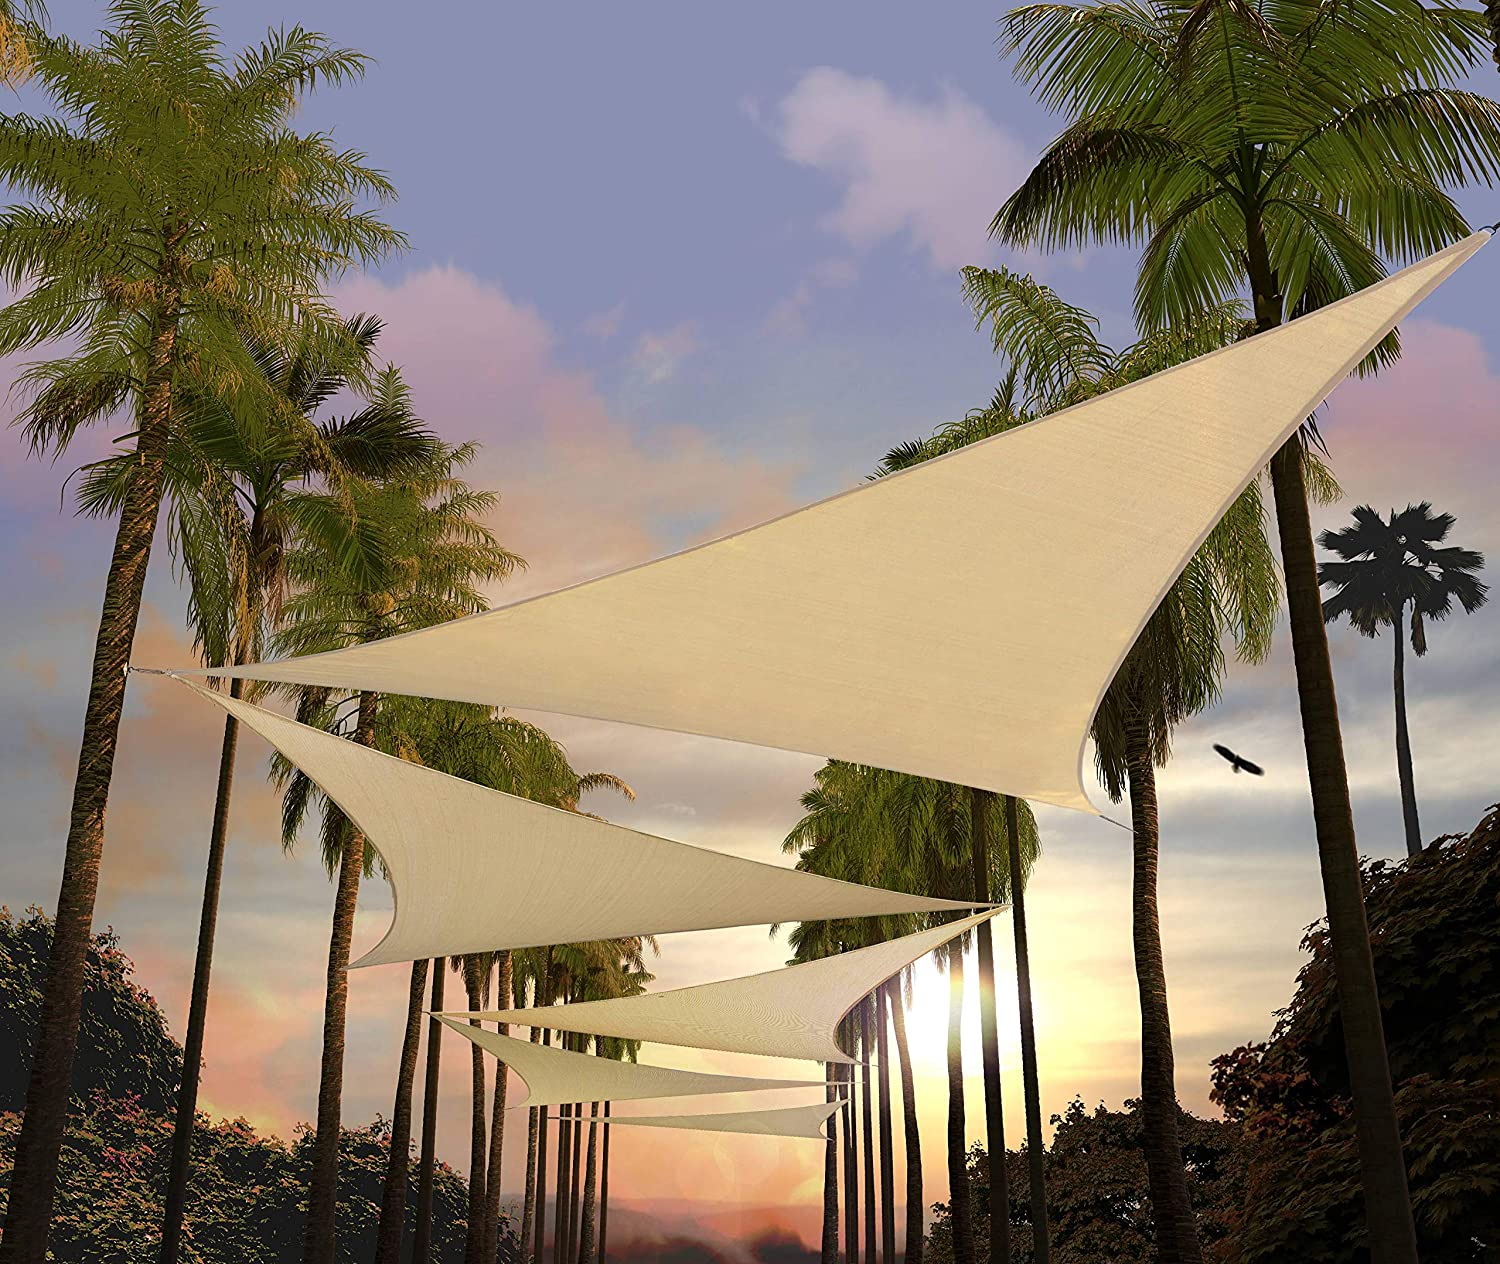 Amgo 28' x 28' x 28' Beige Triangle Sun Shade Sail Canopy Awning, 95% UV Blockage Water & Air Permeable, Commercial & Residential, for Patio Yard Pergola (Available for Custom Sizes)